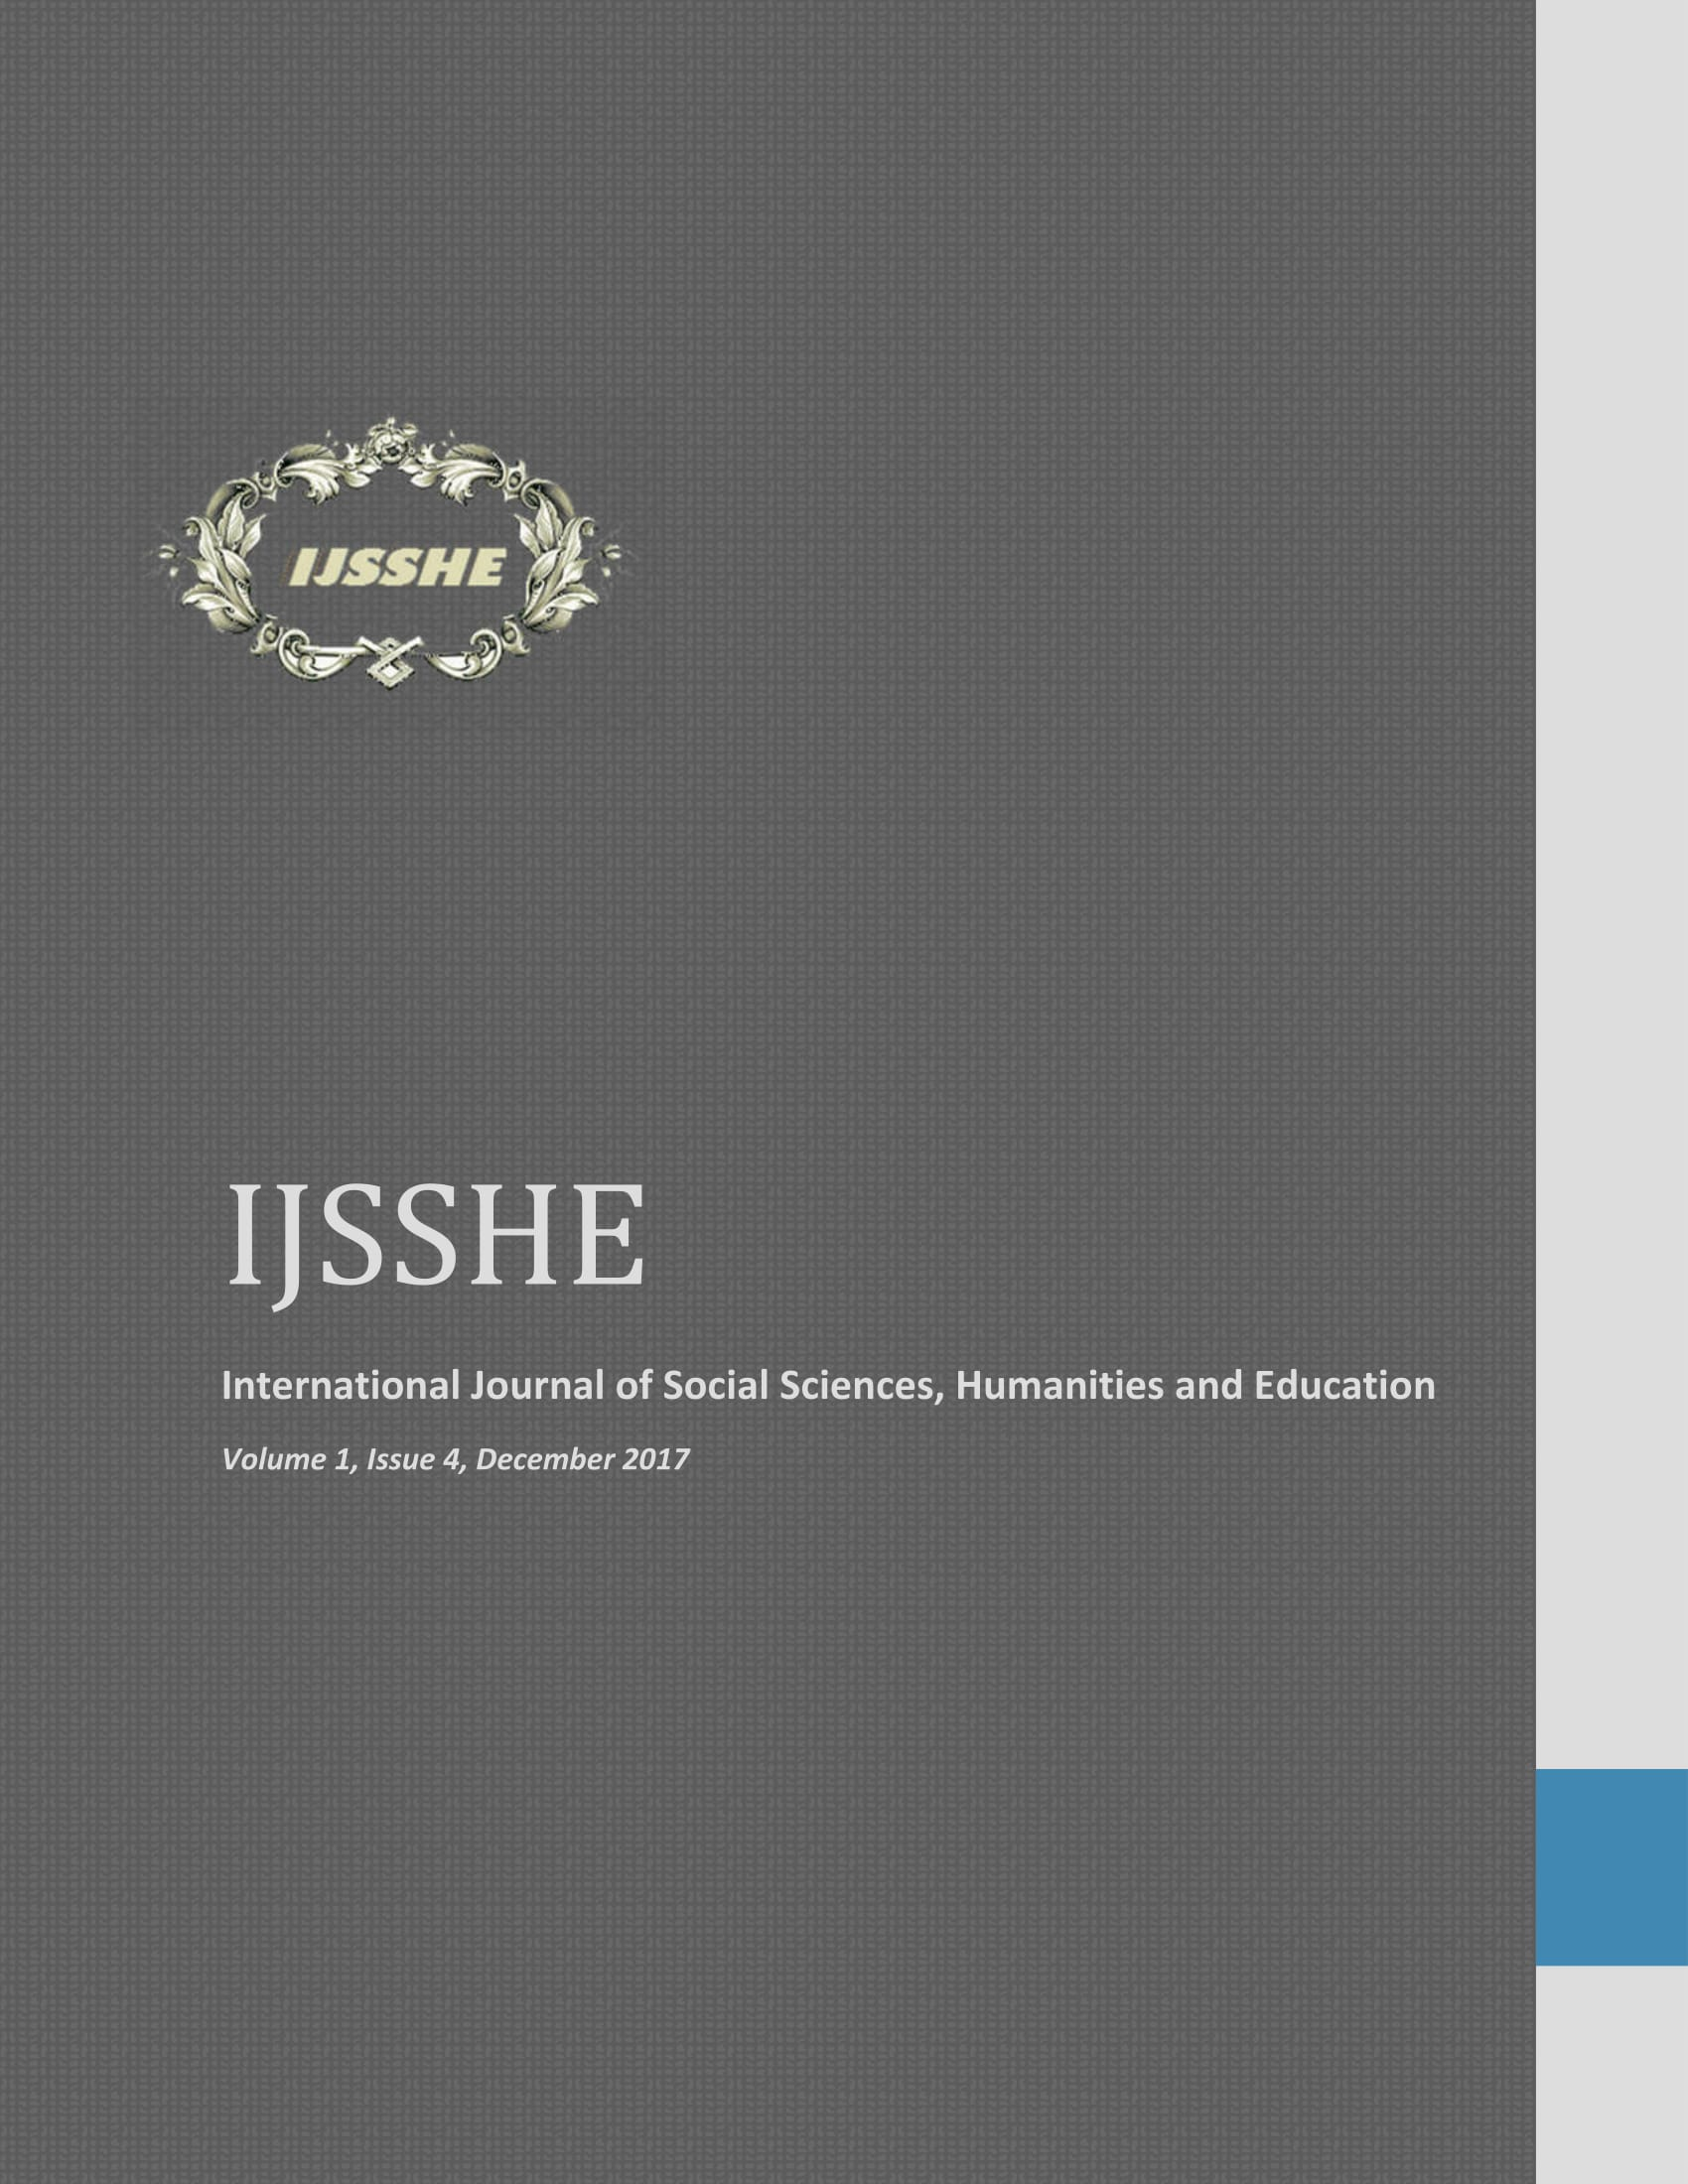 IJSSHE Vol 1, Issue 4, 2017